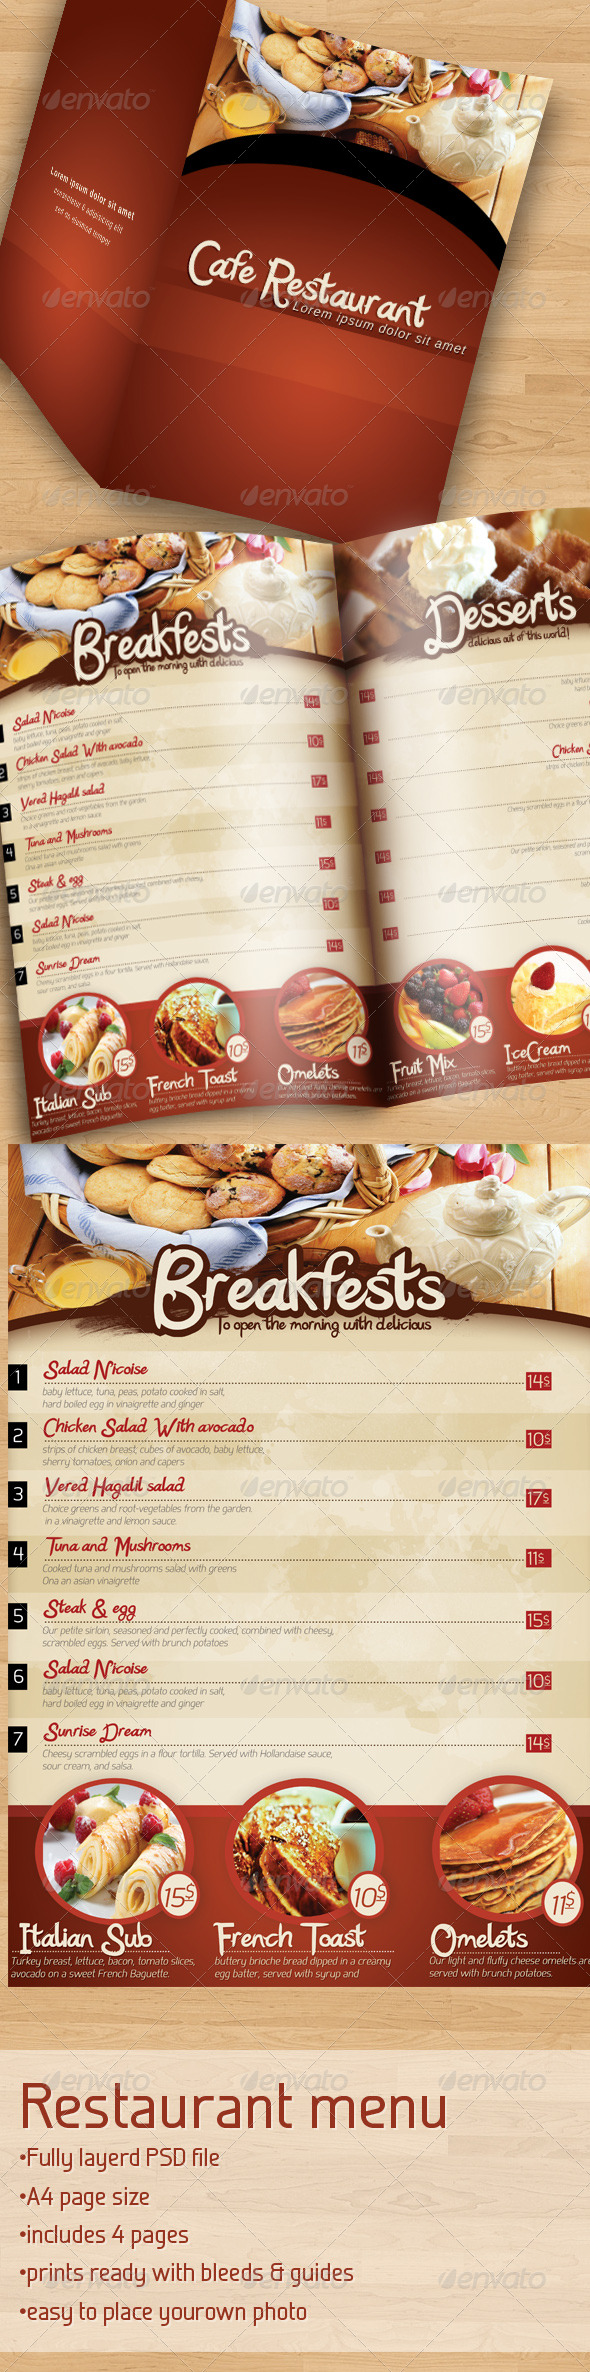 Cafe Restaurant Menu - Food Menus Print Templates